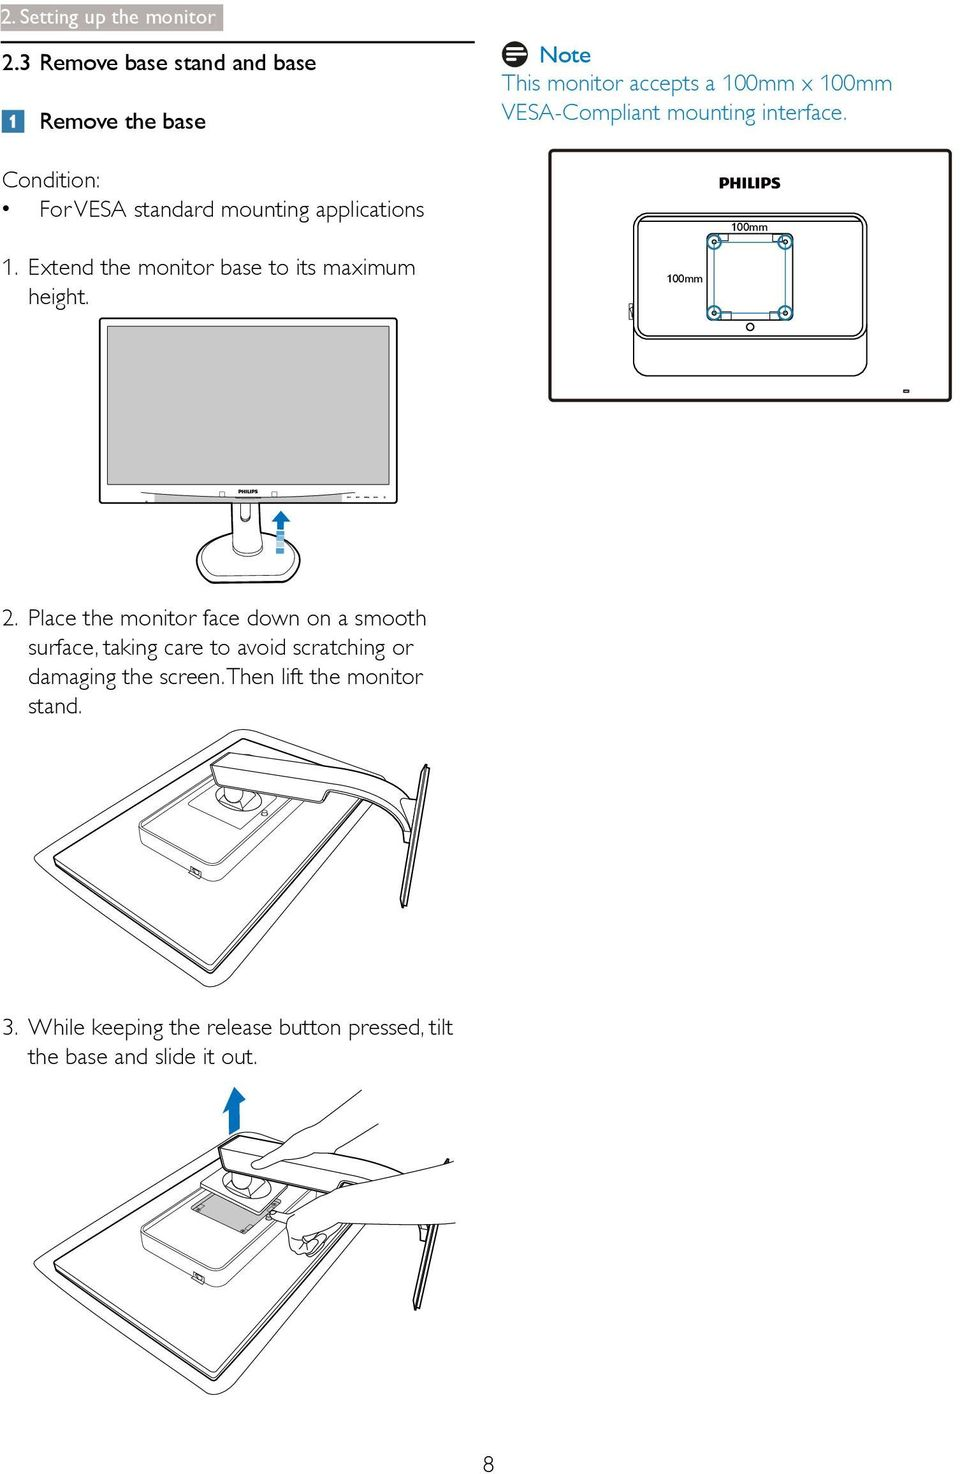 Extend the monitor base to its maximum height.